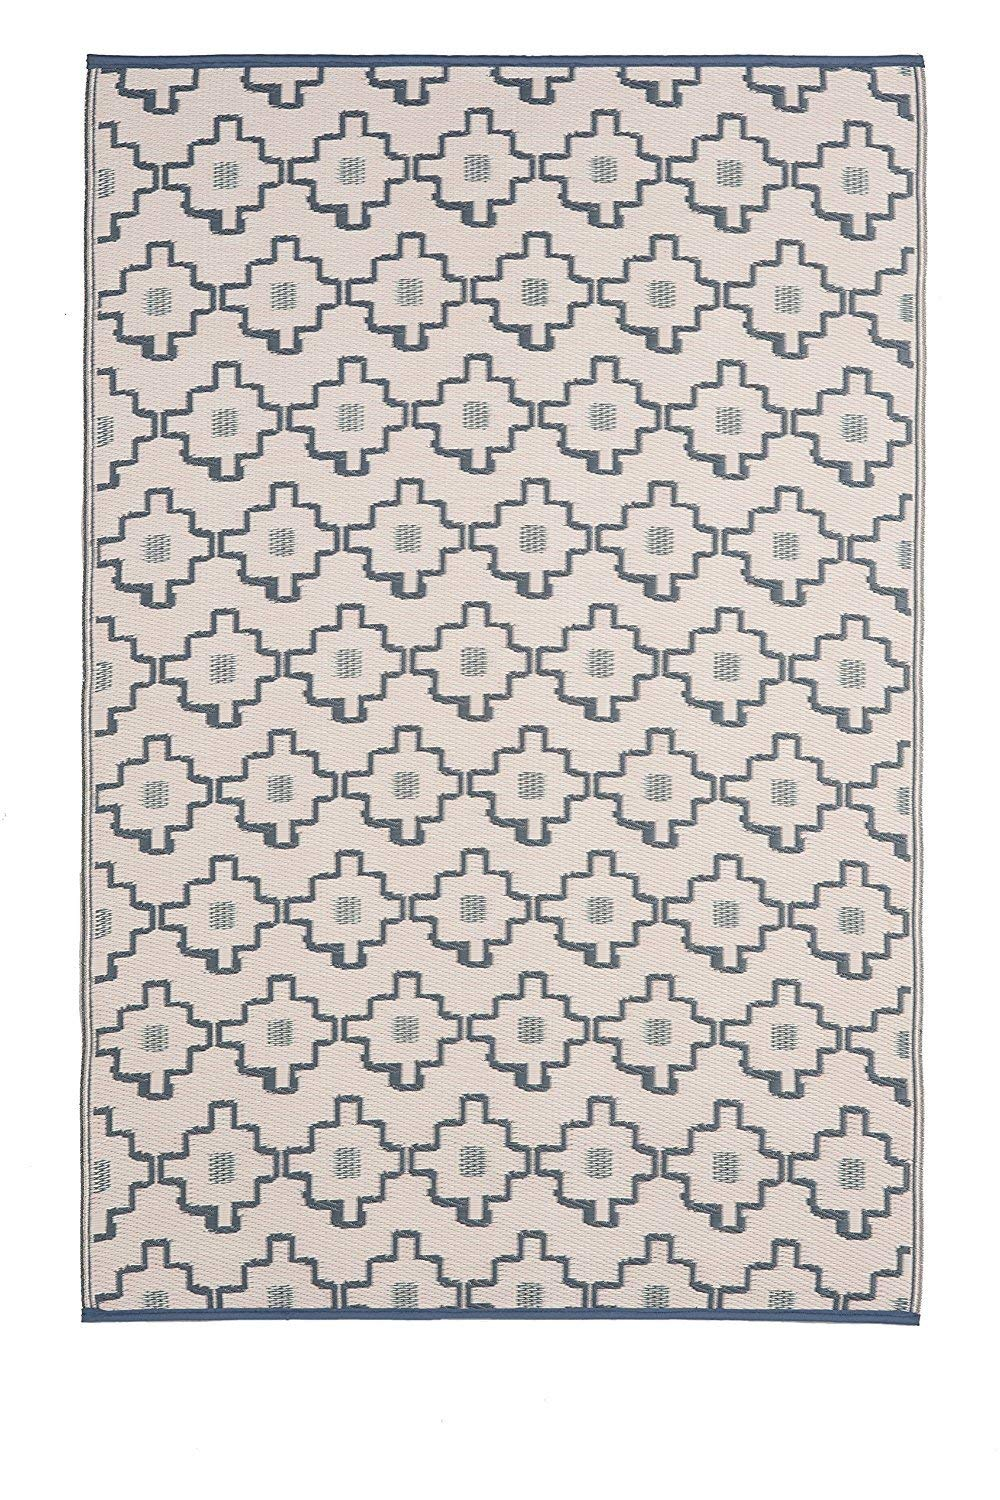 Amazon Com Fab Habitat Reversible Rugs Indoor Or Outdoor Use Stain Resistant Easy To Clean Weather Resistant Floor Mats Fab Habitat Reversible Rug Rugs